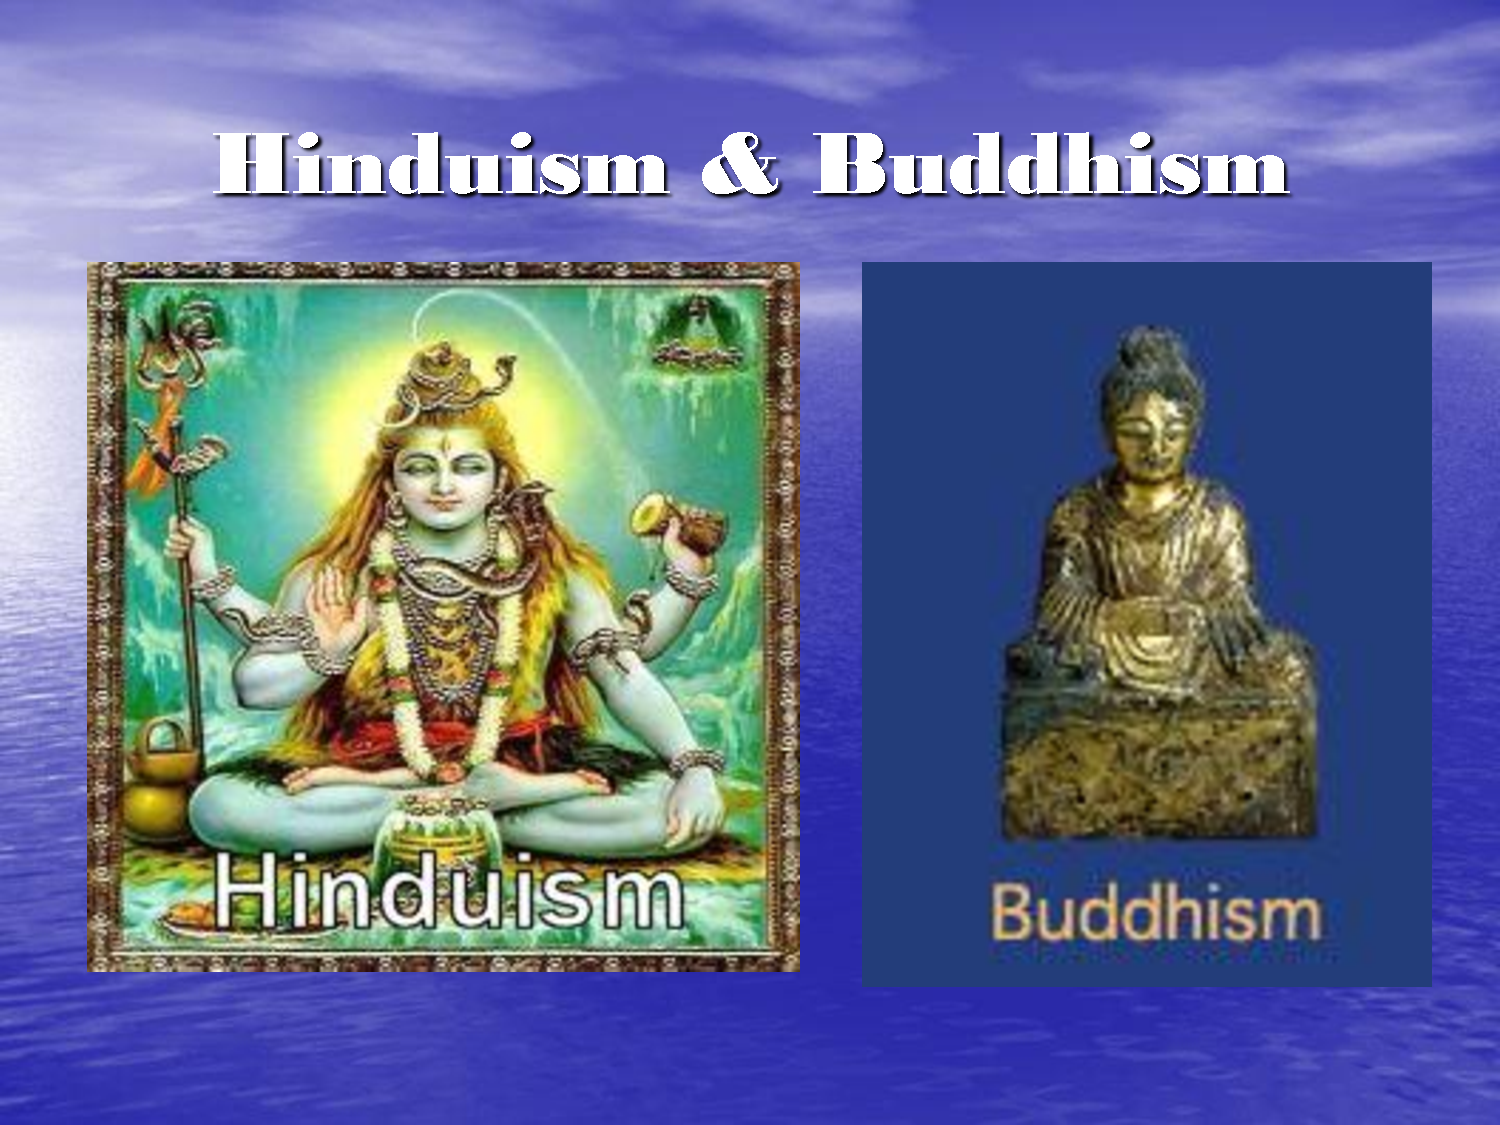 buddhism and sikhism They all share 3 thingsthey belive in karmathey believe in reincarnationthey were all formed in india.